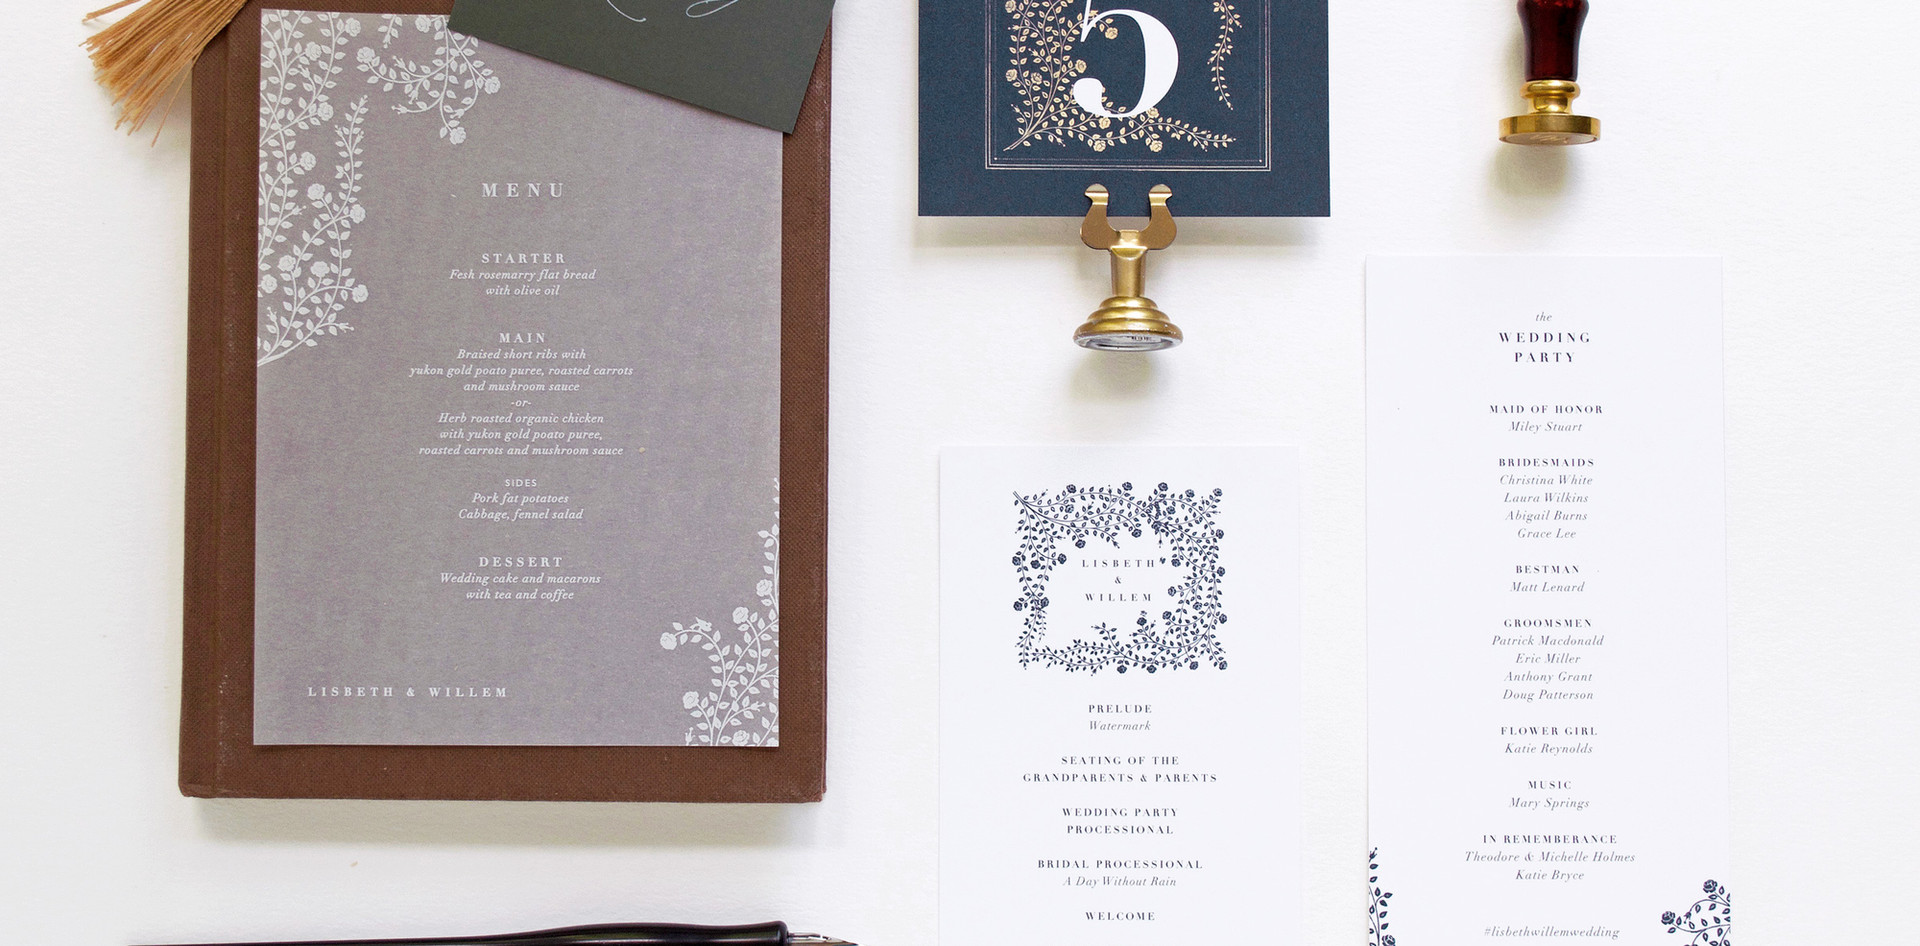 Lisbeth program card, vellum menu card, place card with gold tassel, and table number.